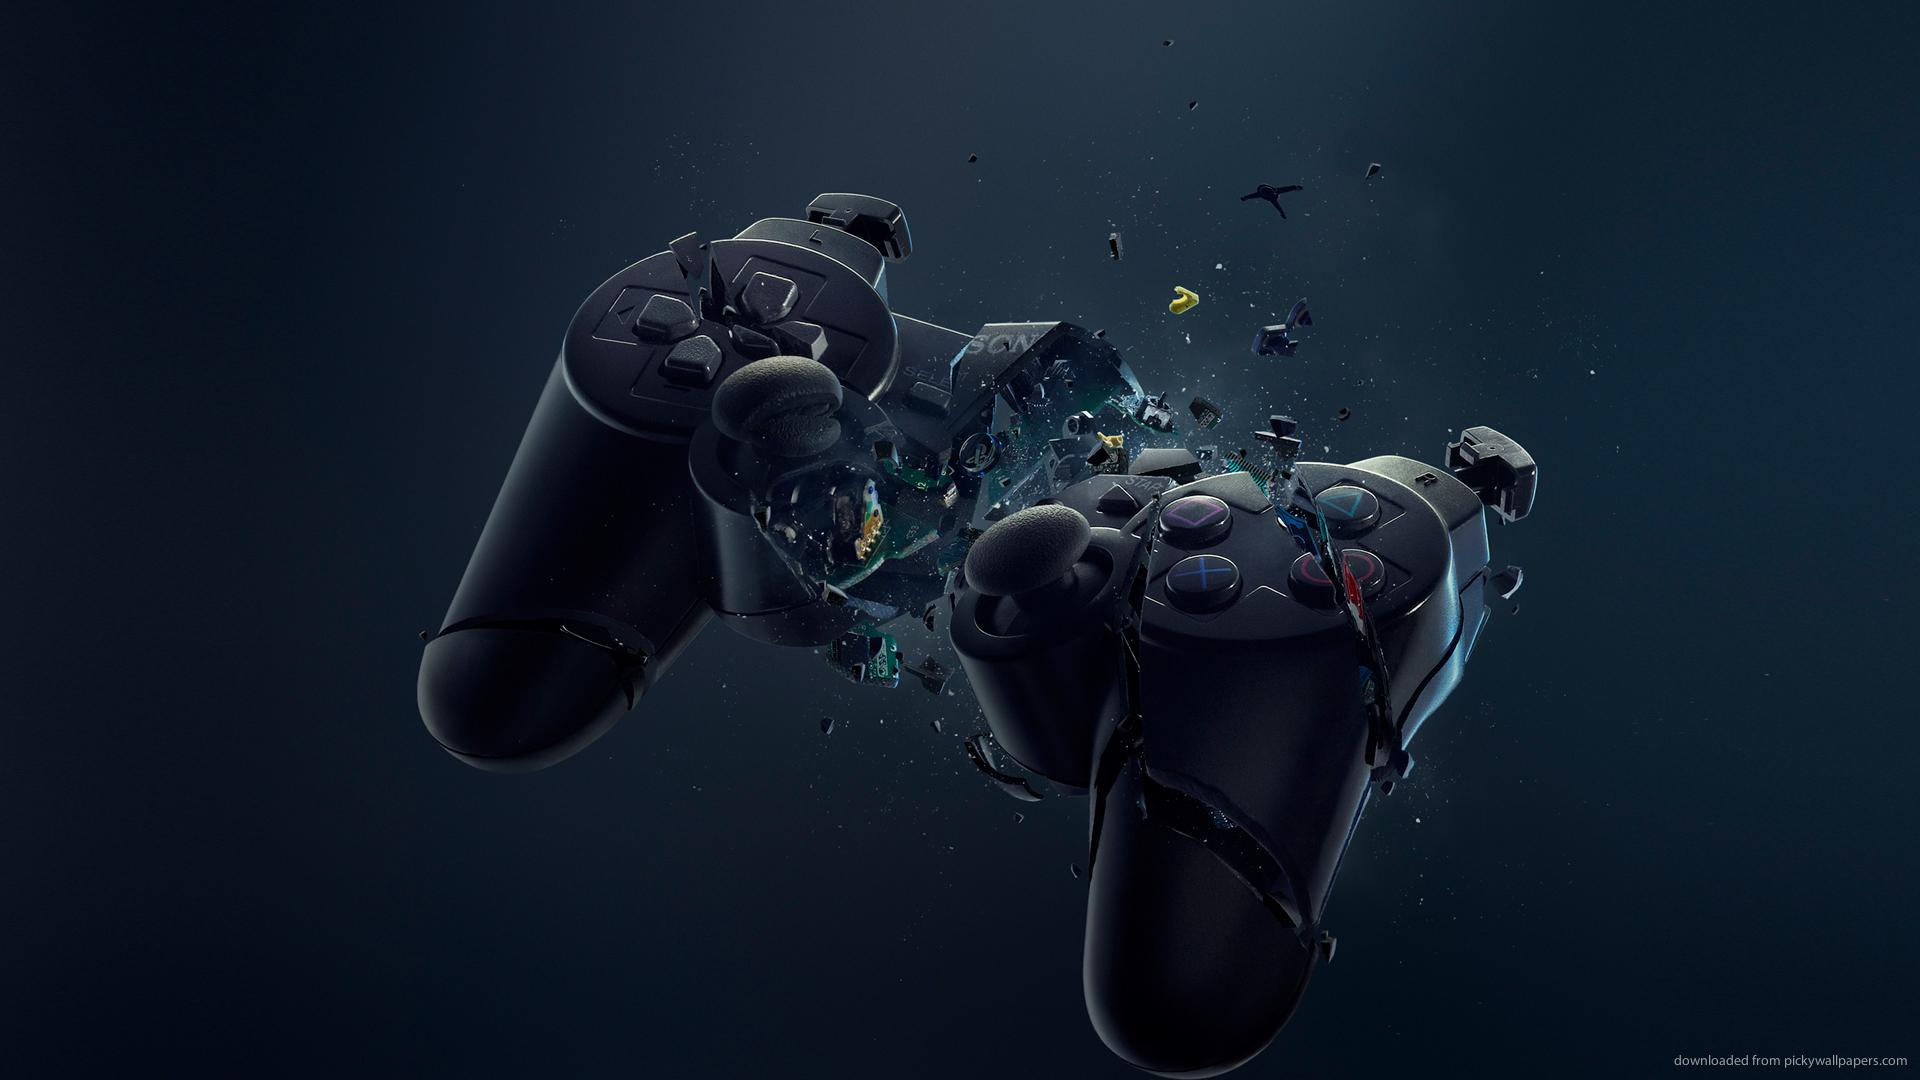 Ps3 Wallpapers Download